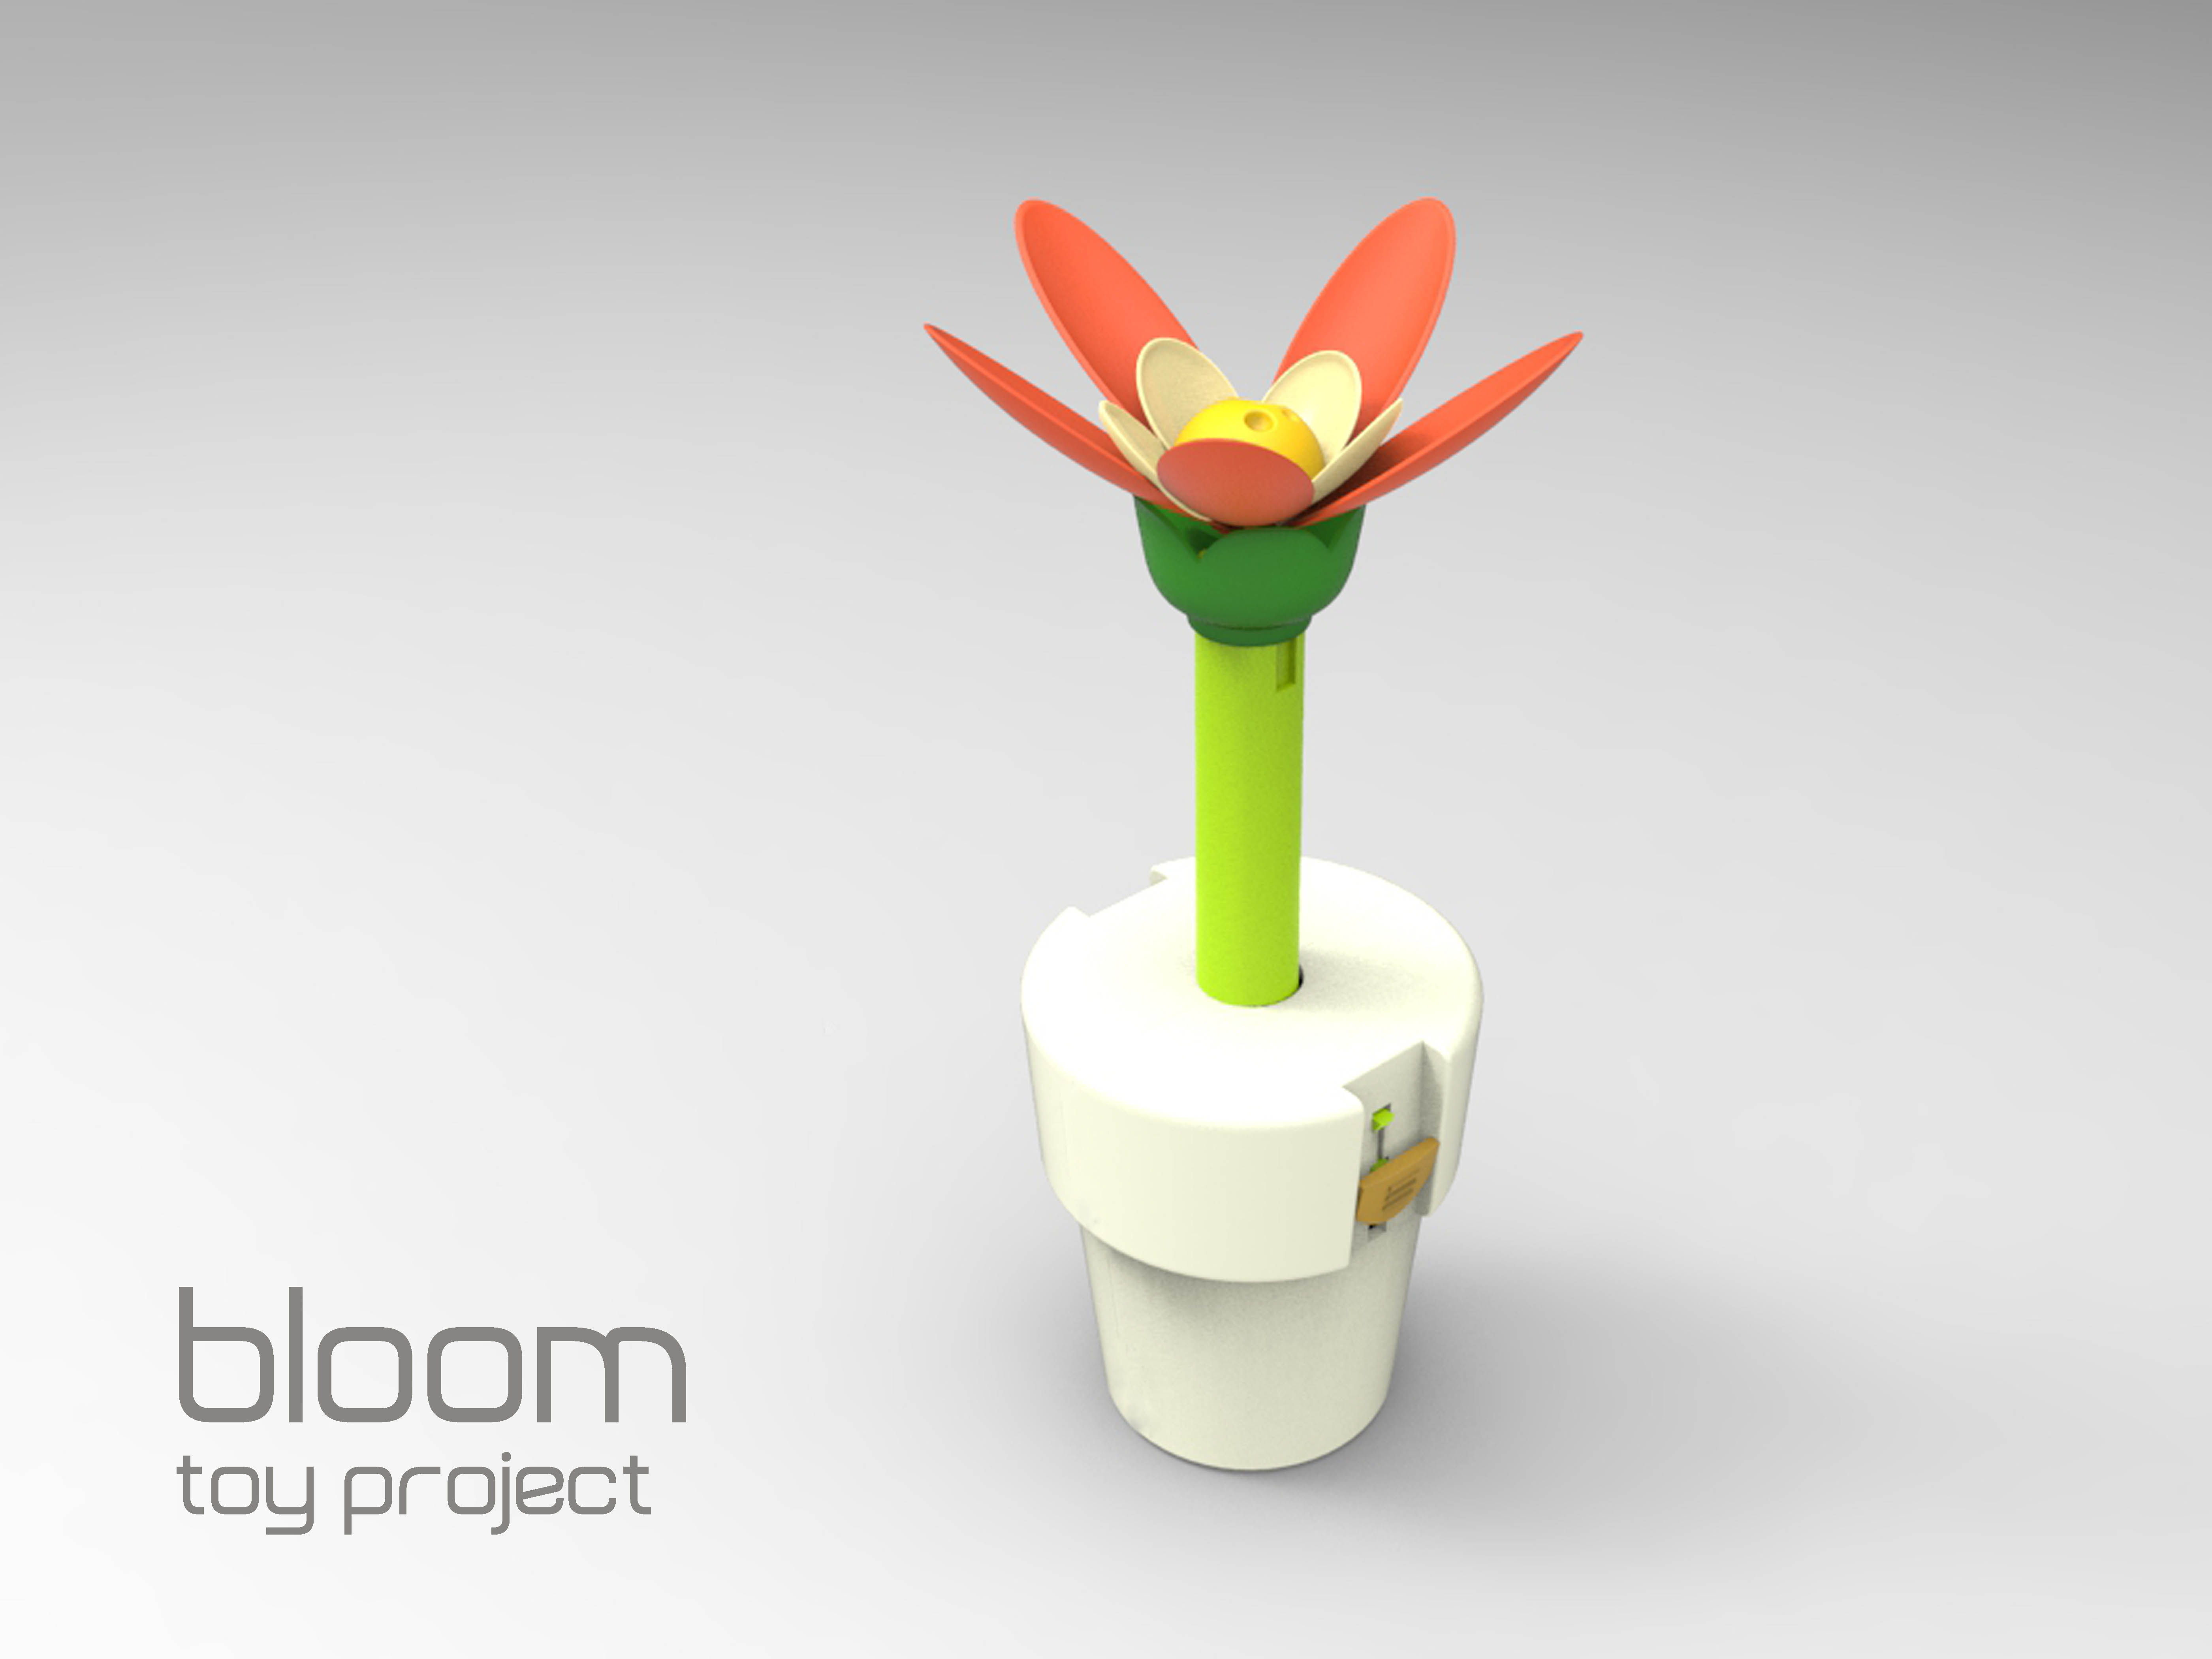 Blooming Flower Toy